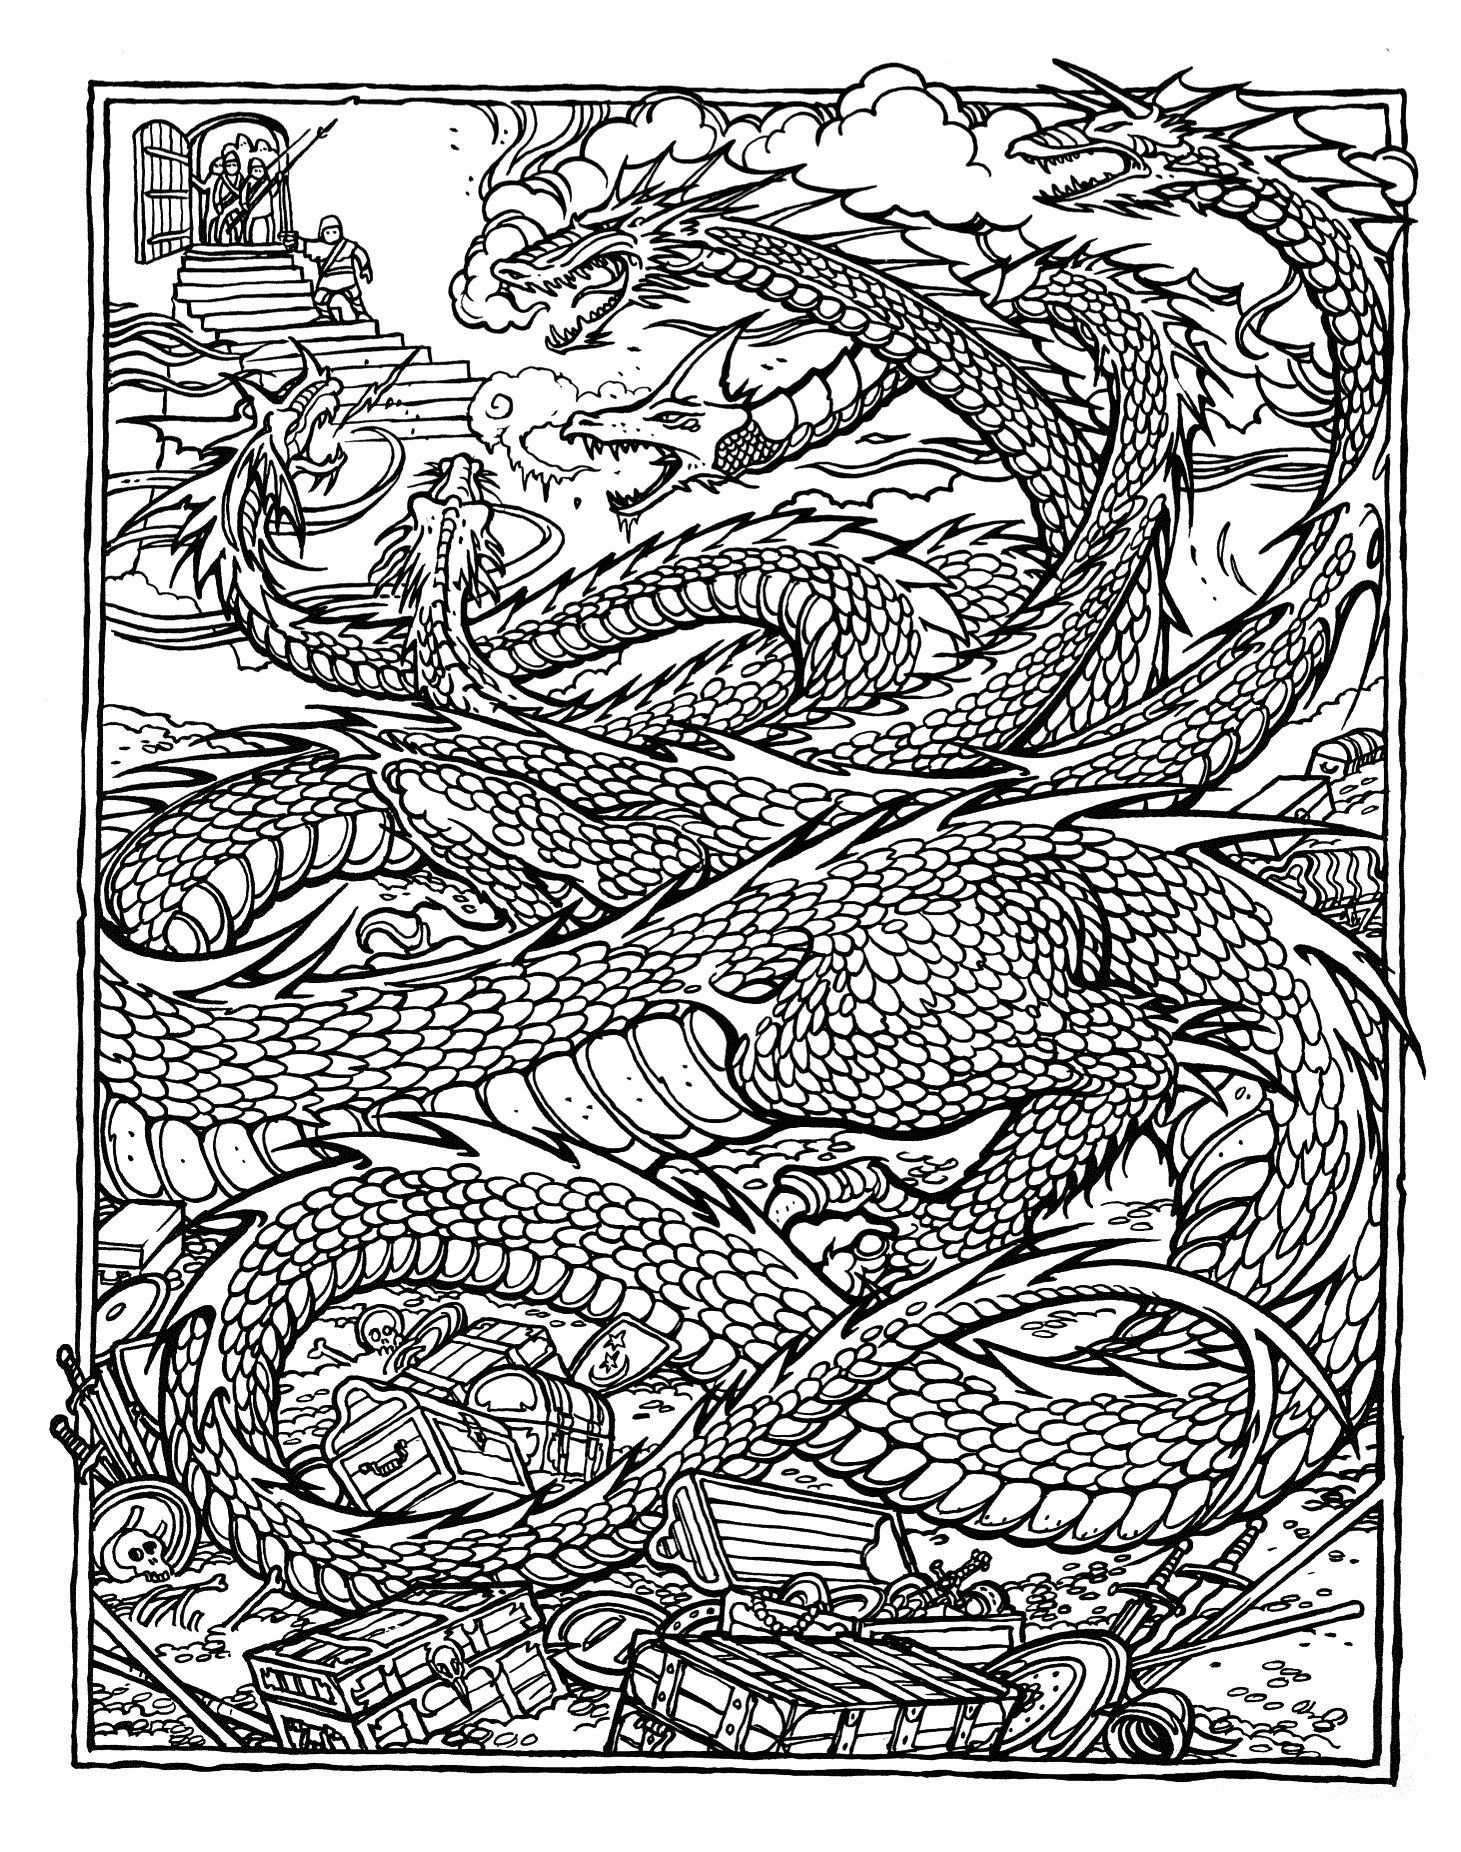 Dungeons And Dragons Coloring Book Inspirational Monster Brains The Ficial Advanced Dungeons Dragon Coloring Page Detailed Coloring Pages Online Coloring Pages